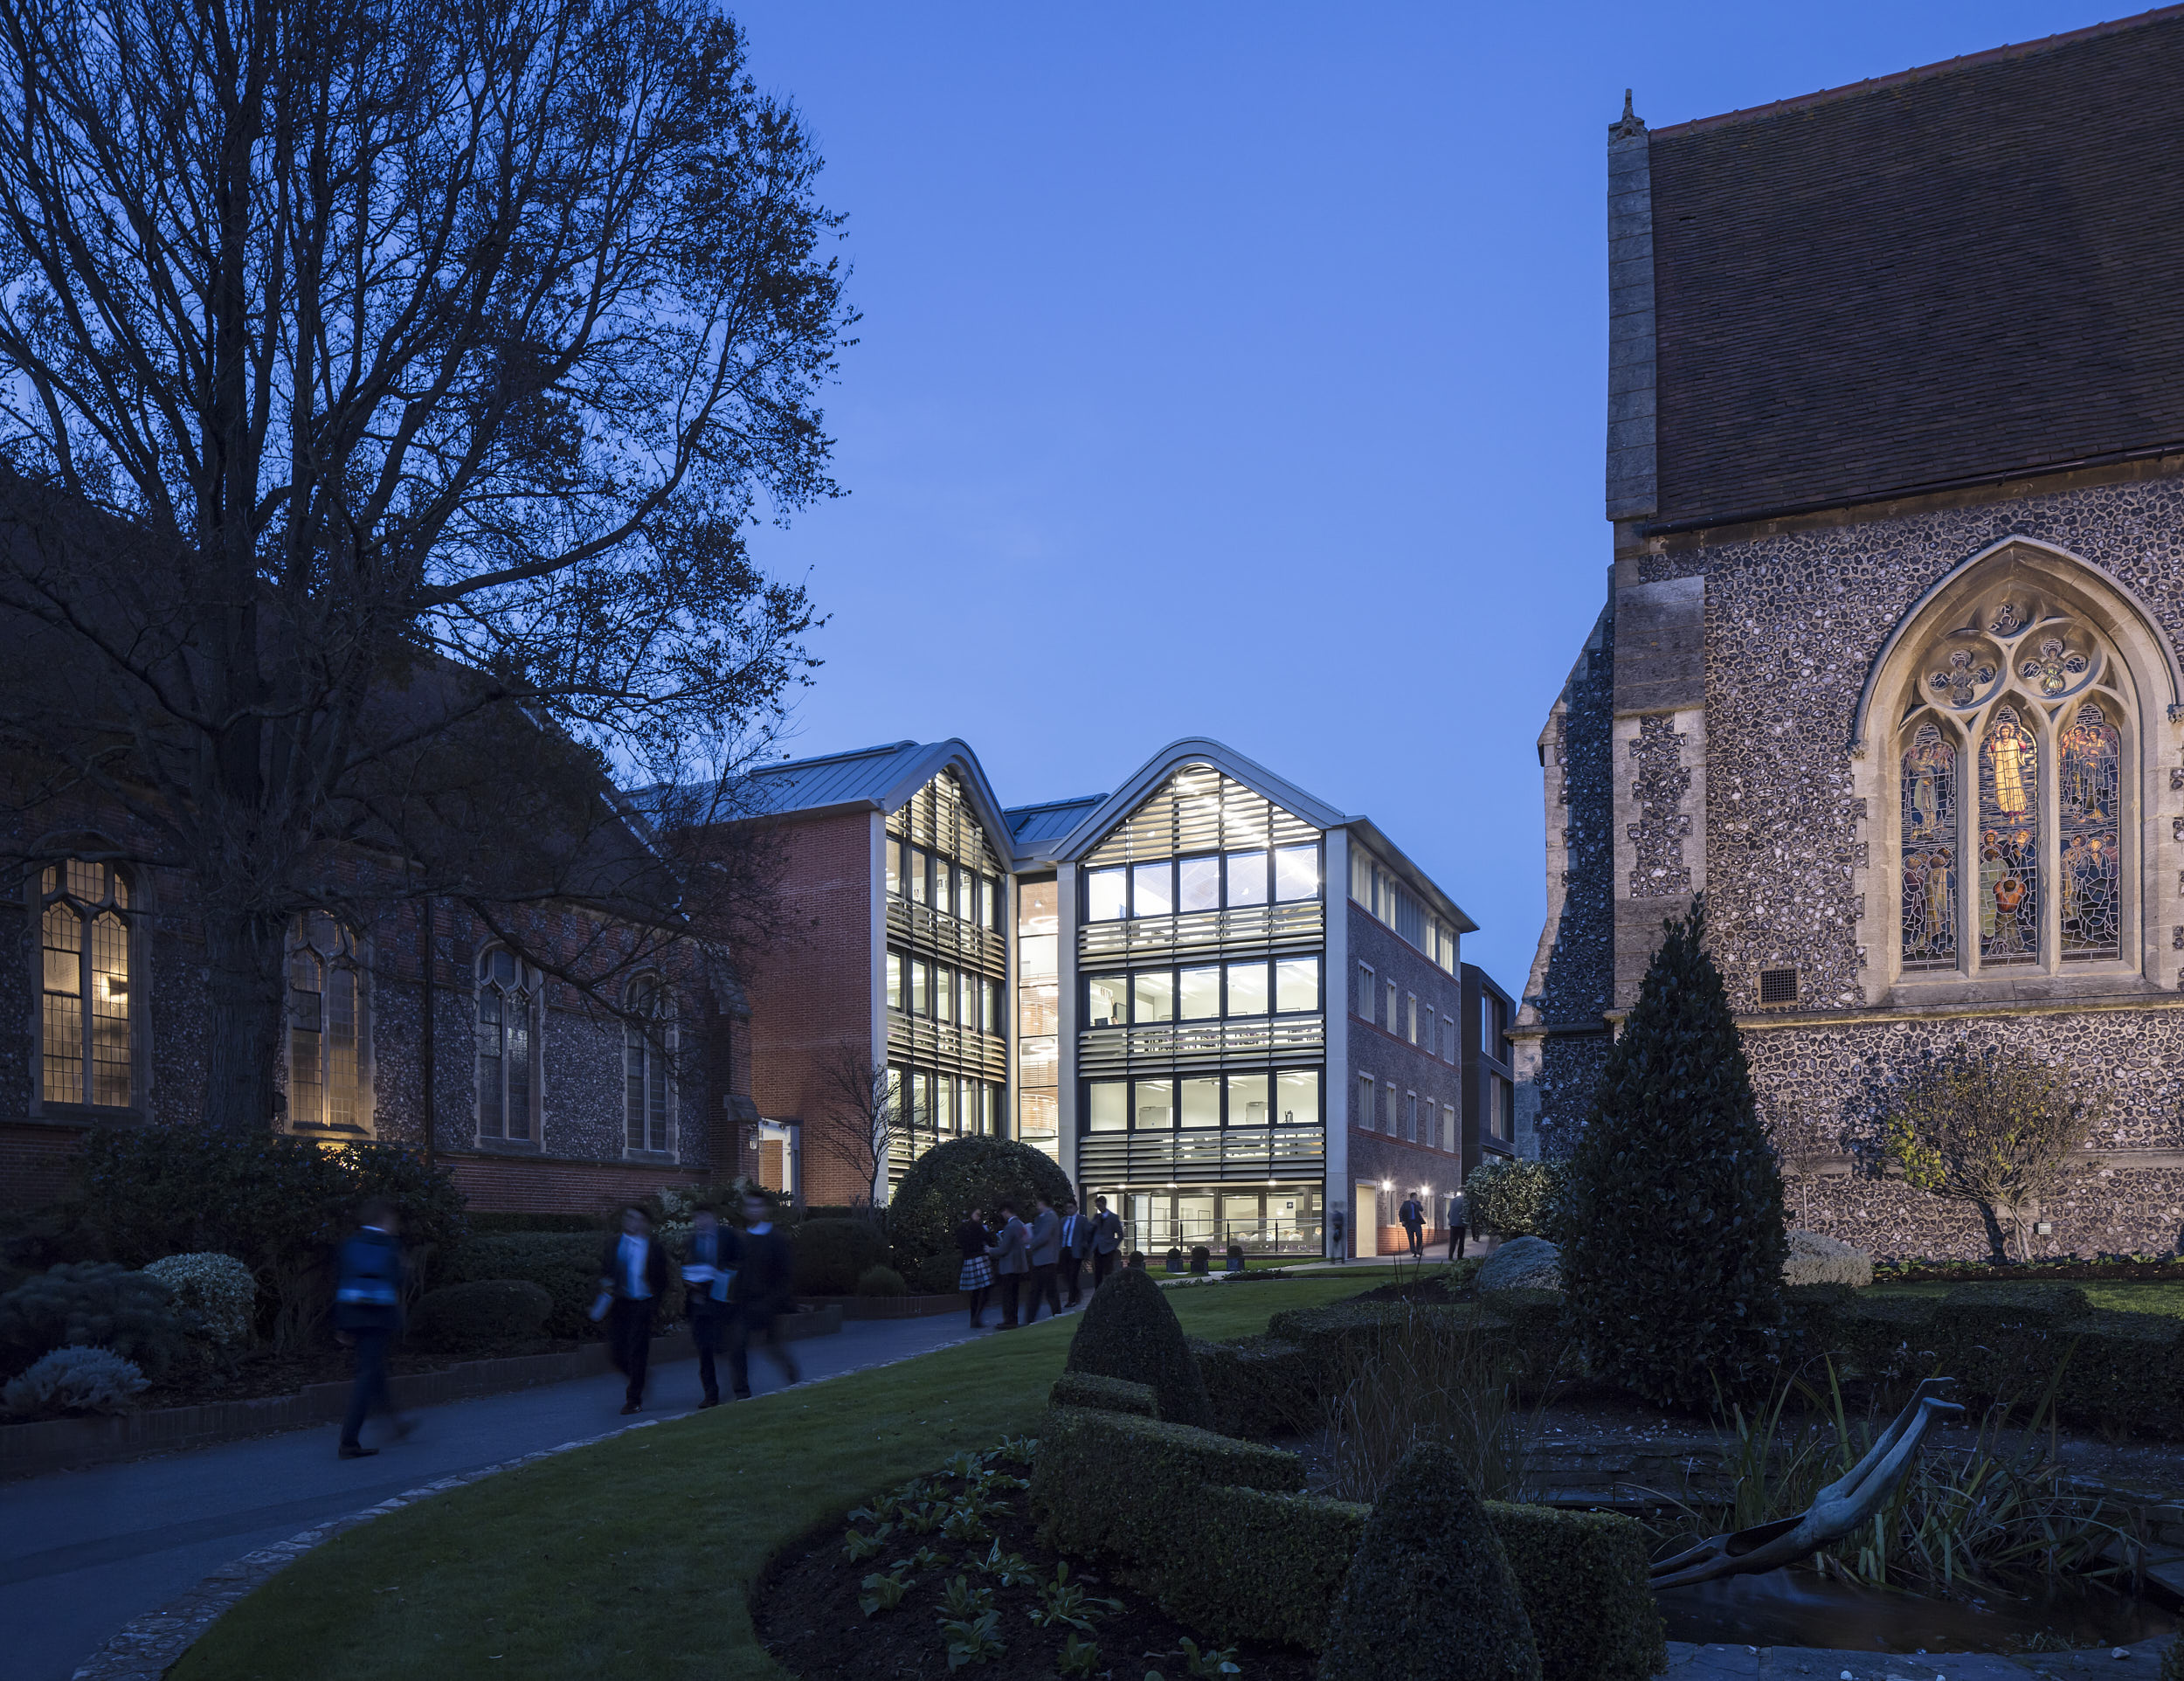 Exterior night view showing the new, glazed architecture in its historical context.